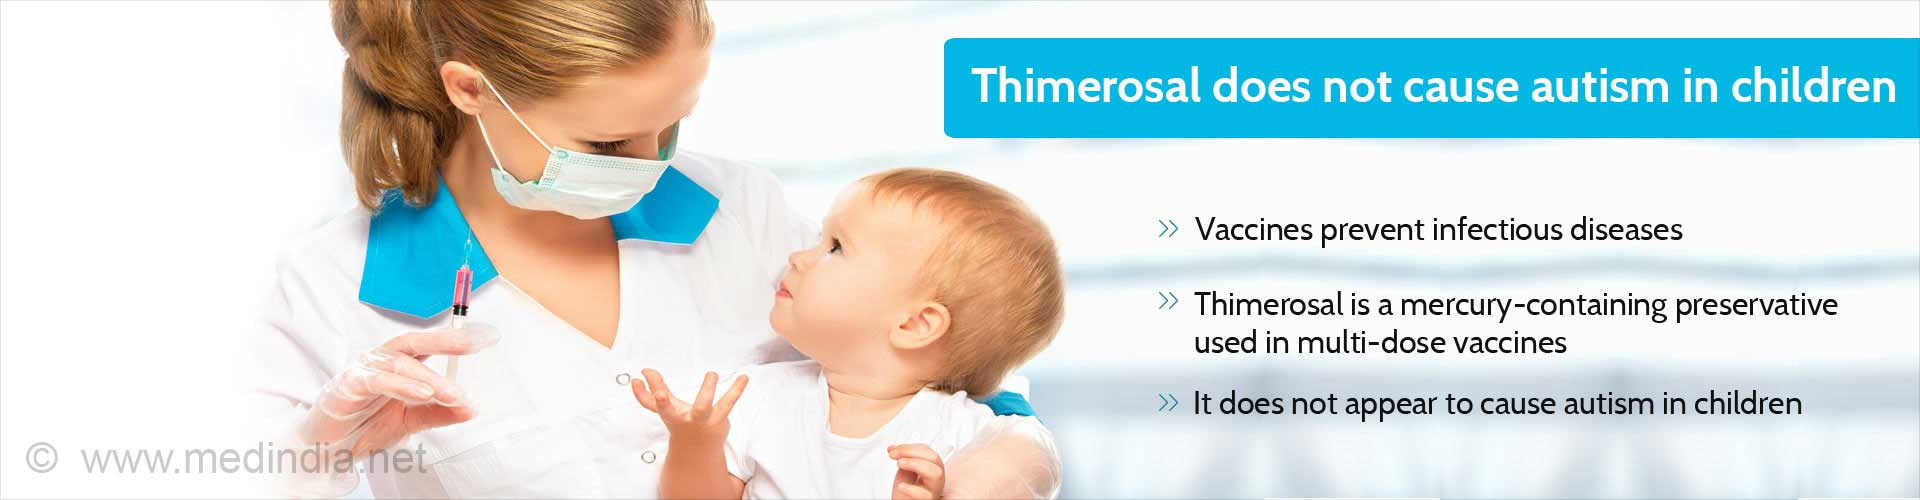 Thimerosal in Vaccines Does Not Cause Autism in Children